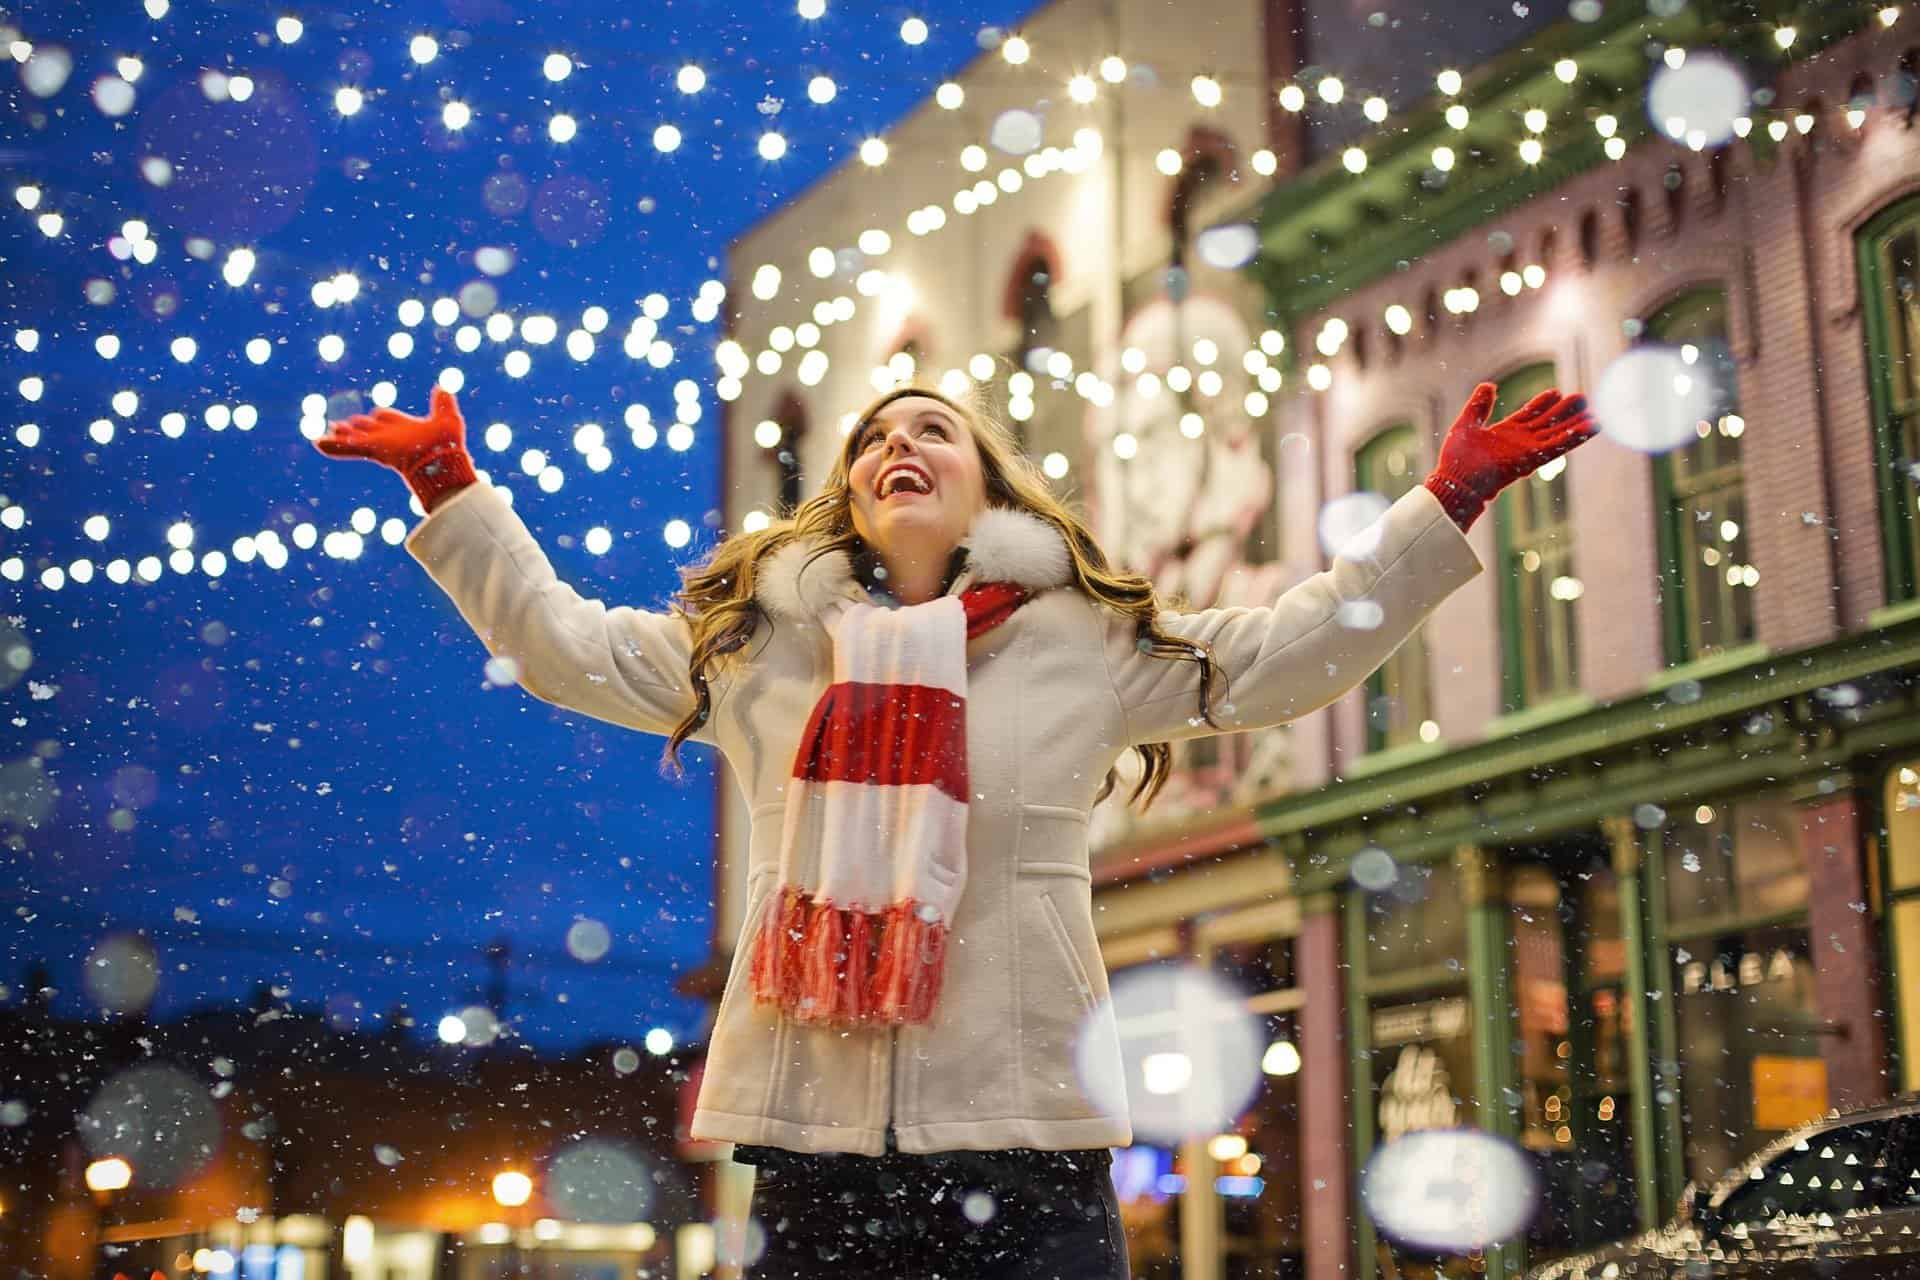 Woman Enjoying the holiday season with less stress and better health.